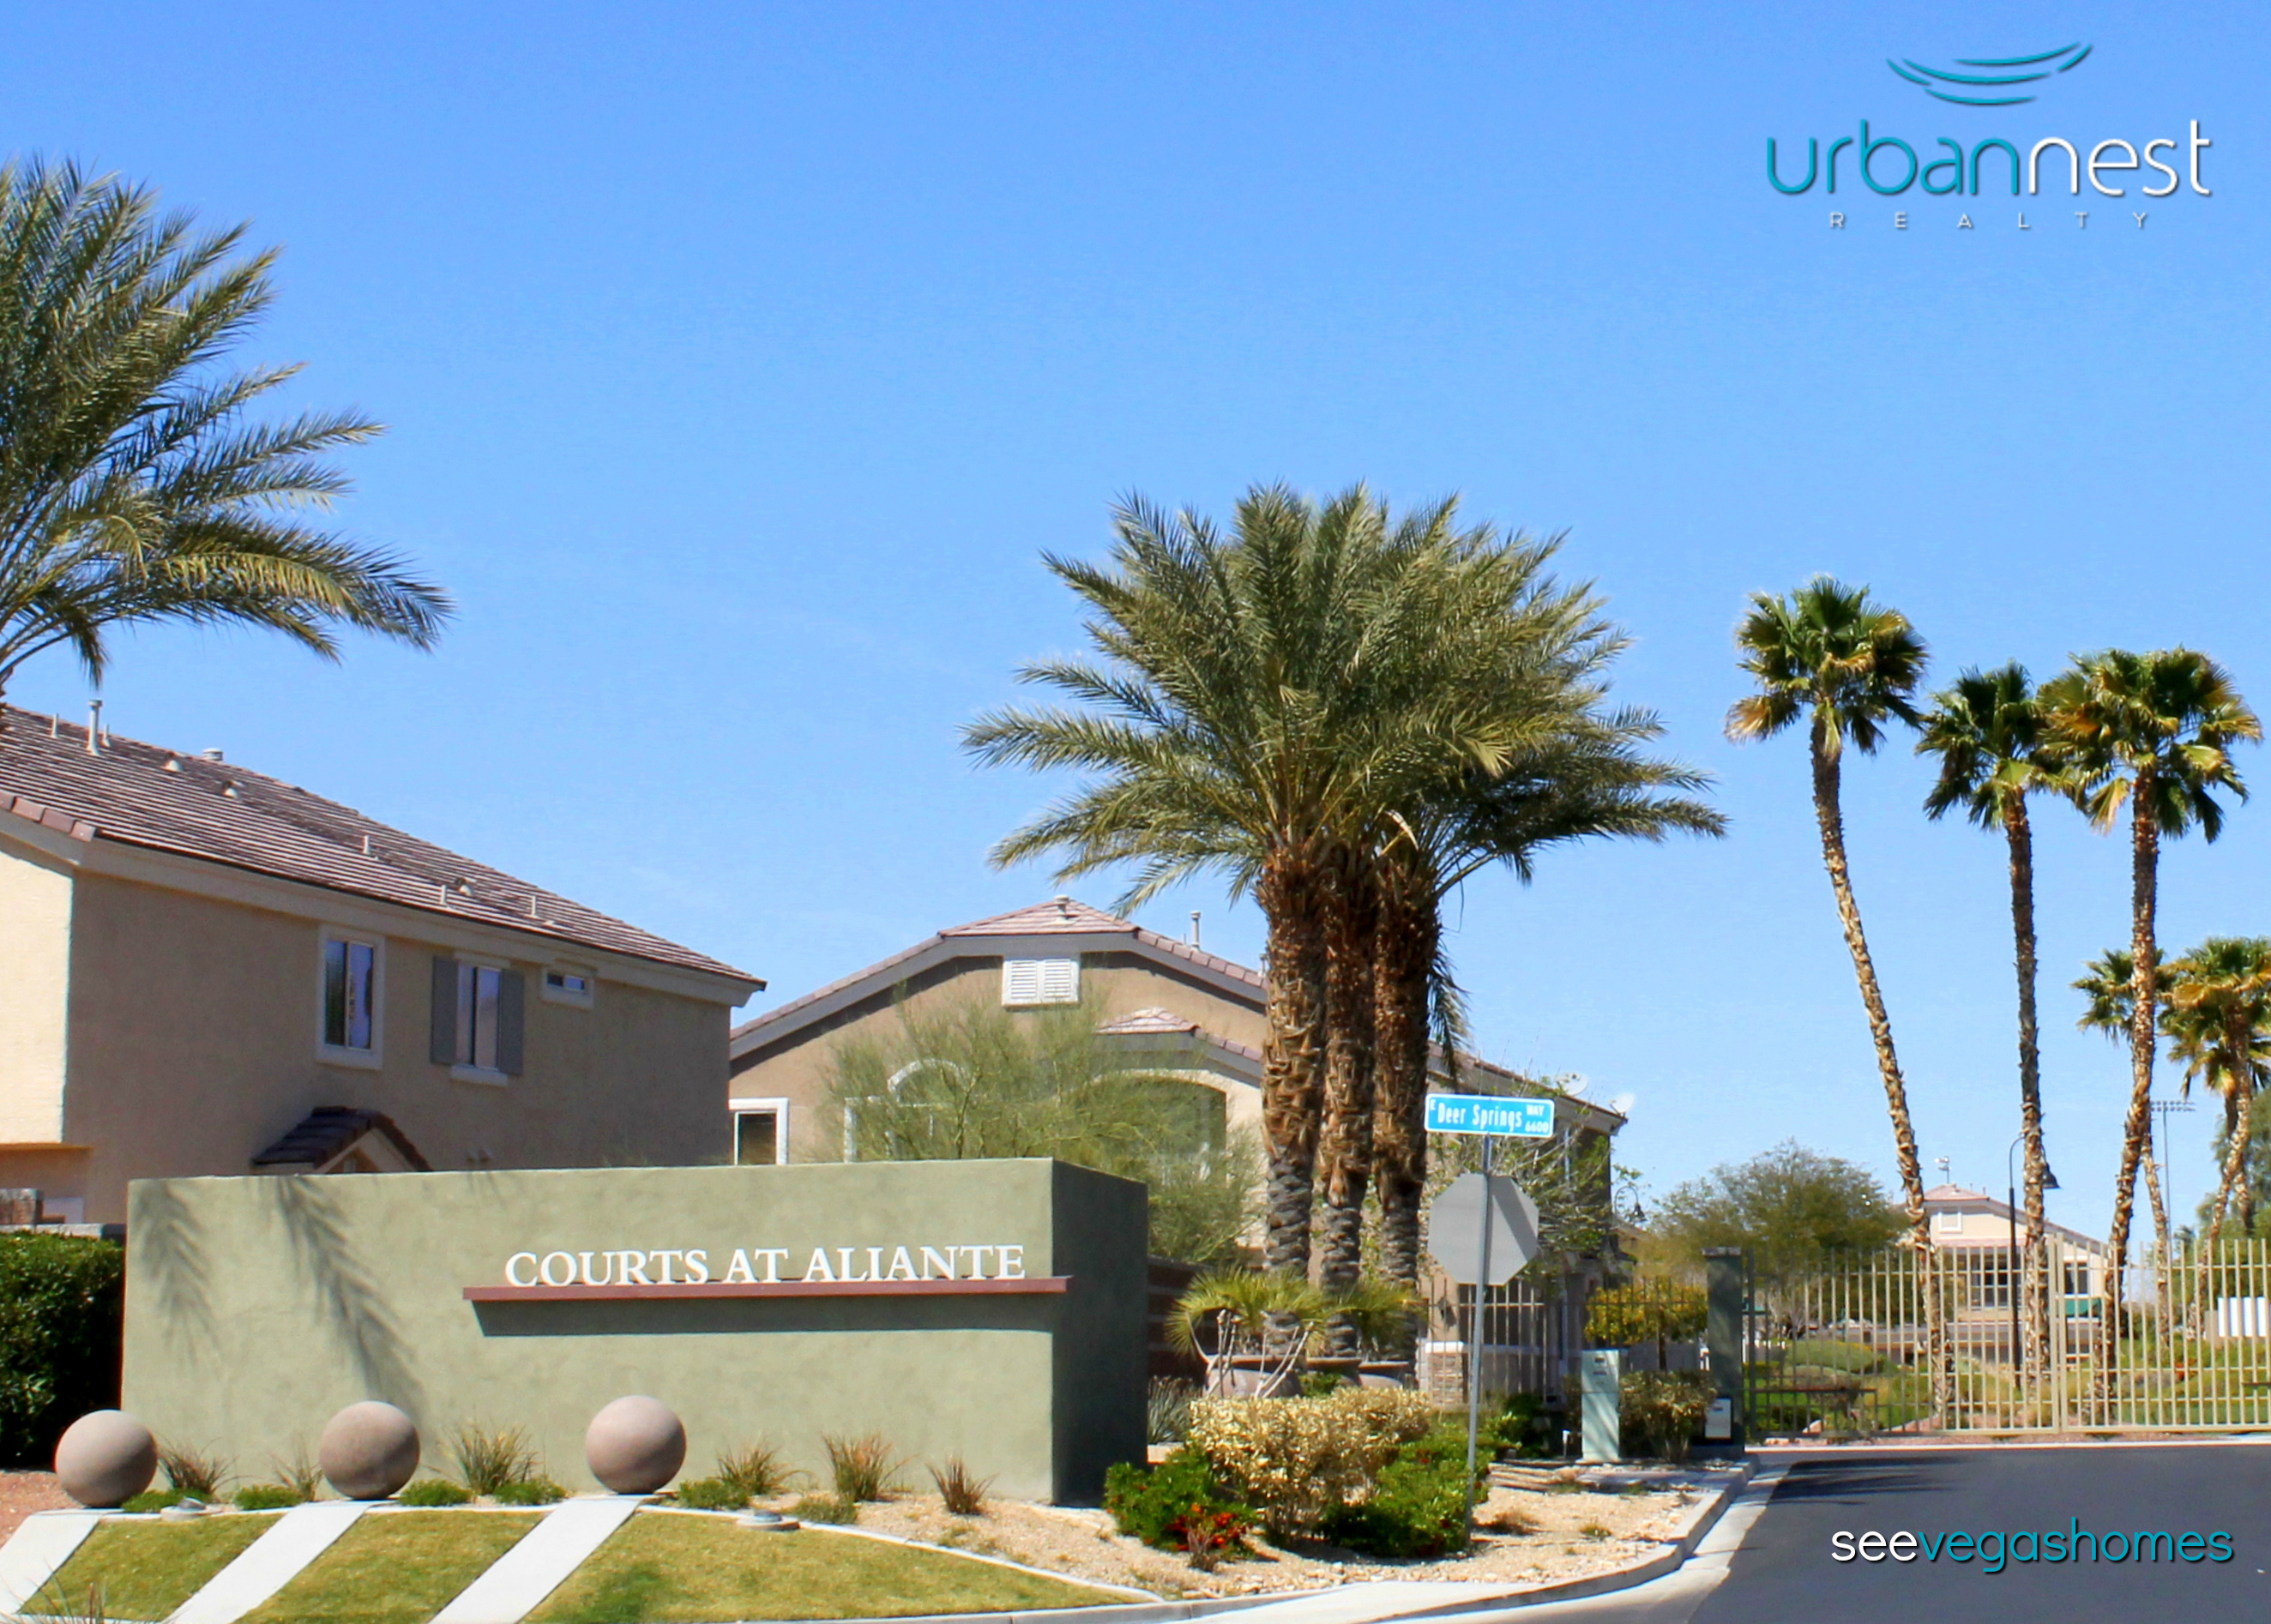 Courts at Aliante Townhomes North Valley Court Las Vegas NV 89084 SeeVegasHomes